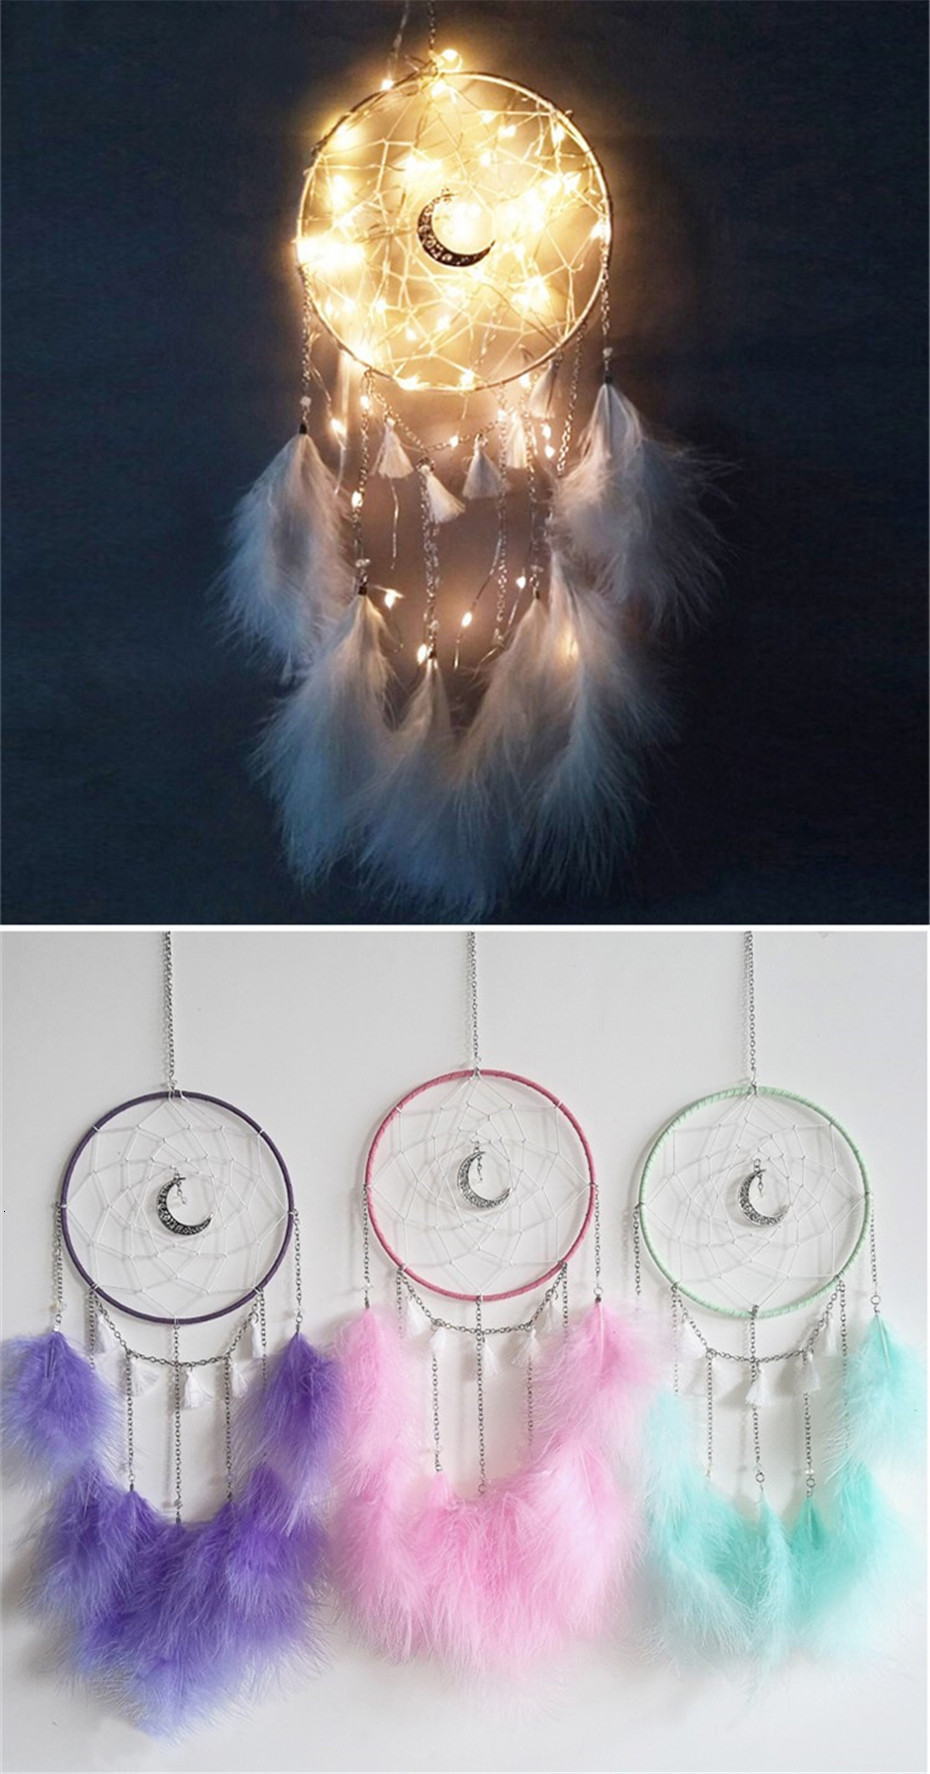 dreamcatcher bedroom decoration window decors hung over or near your bed white